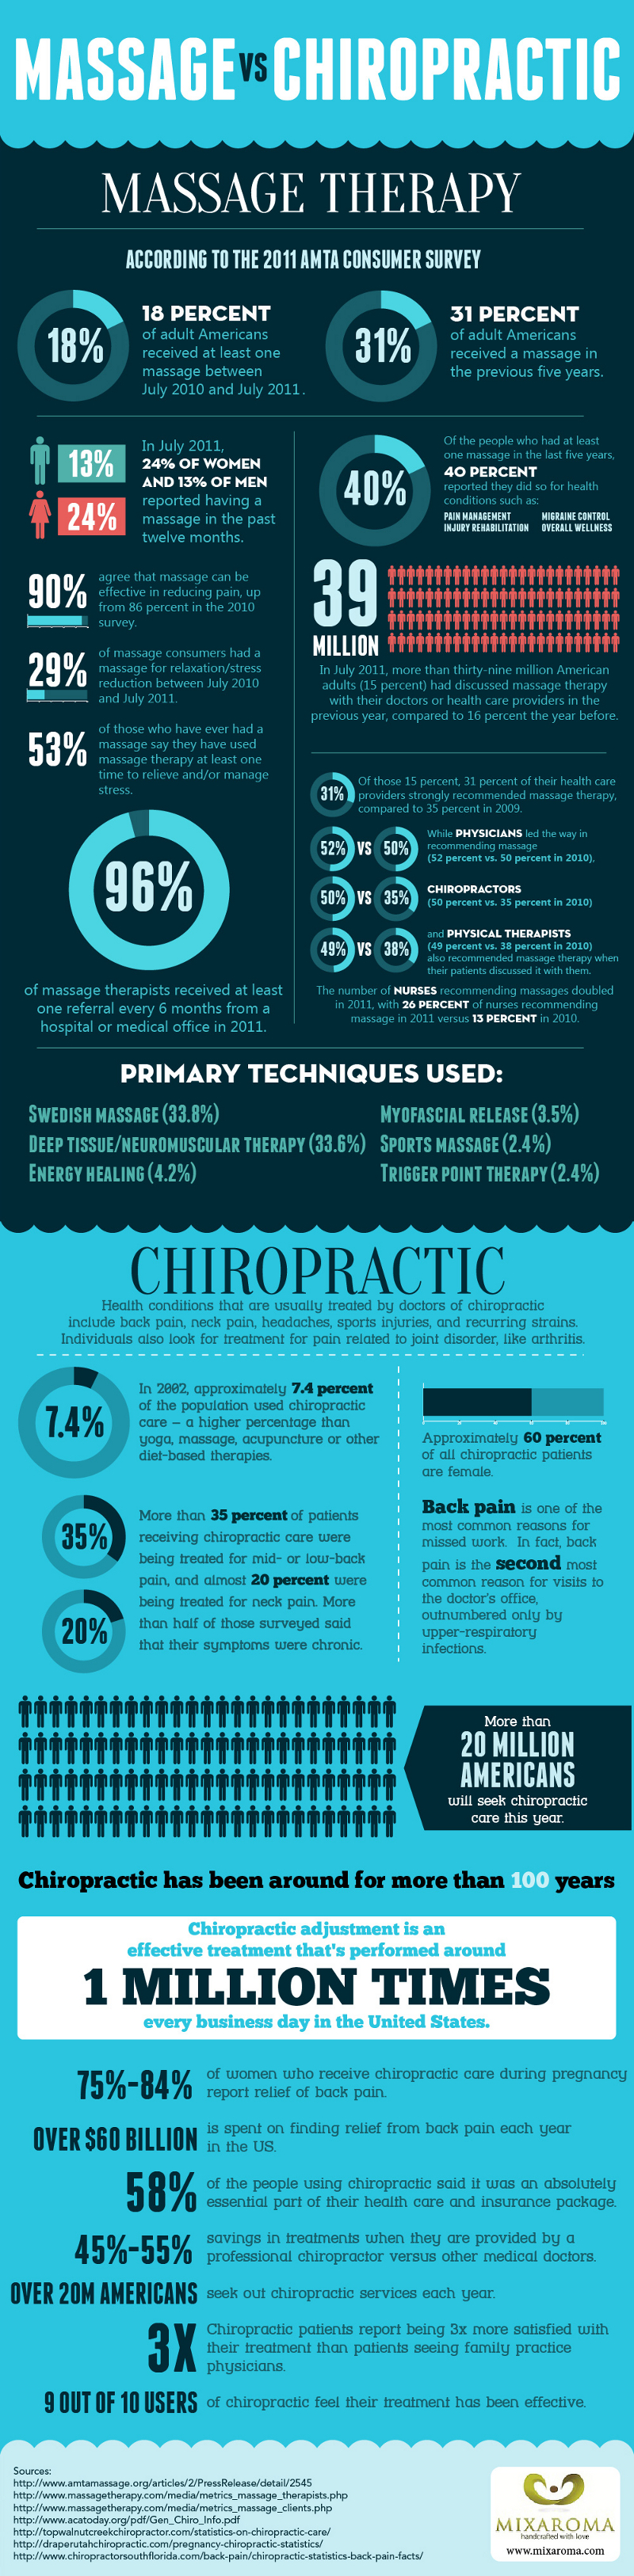 Massage Therapy vs Chiropractic Care